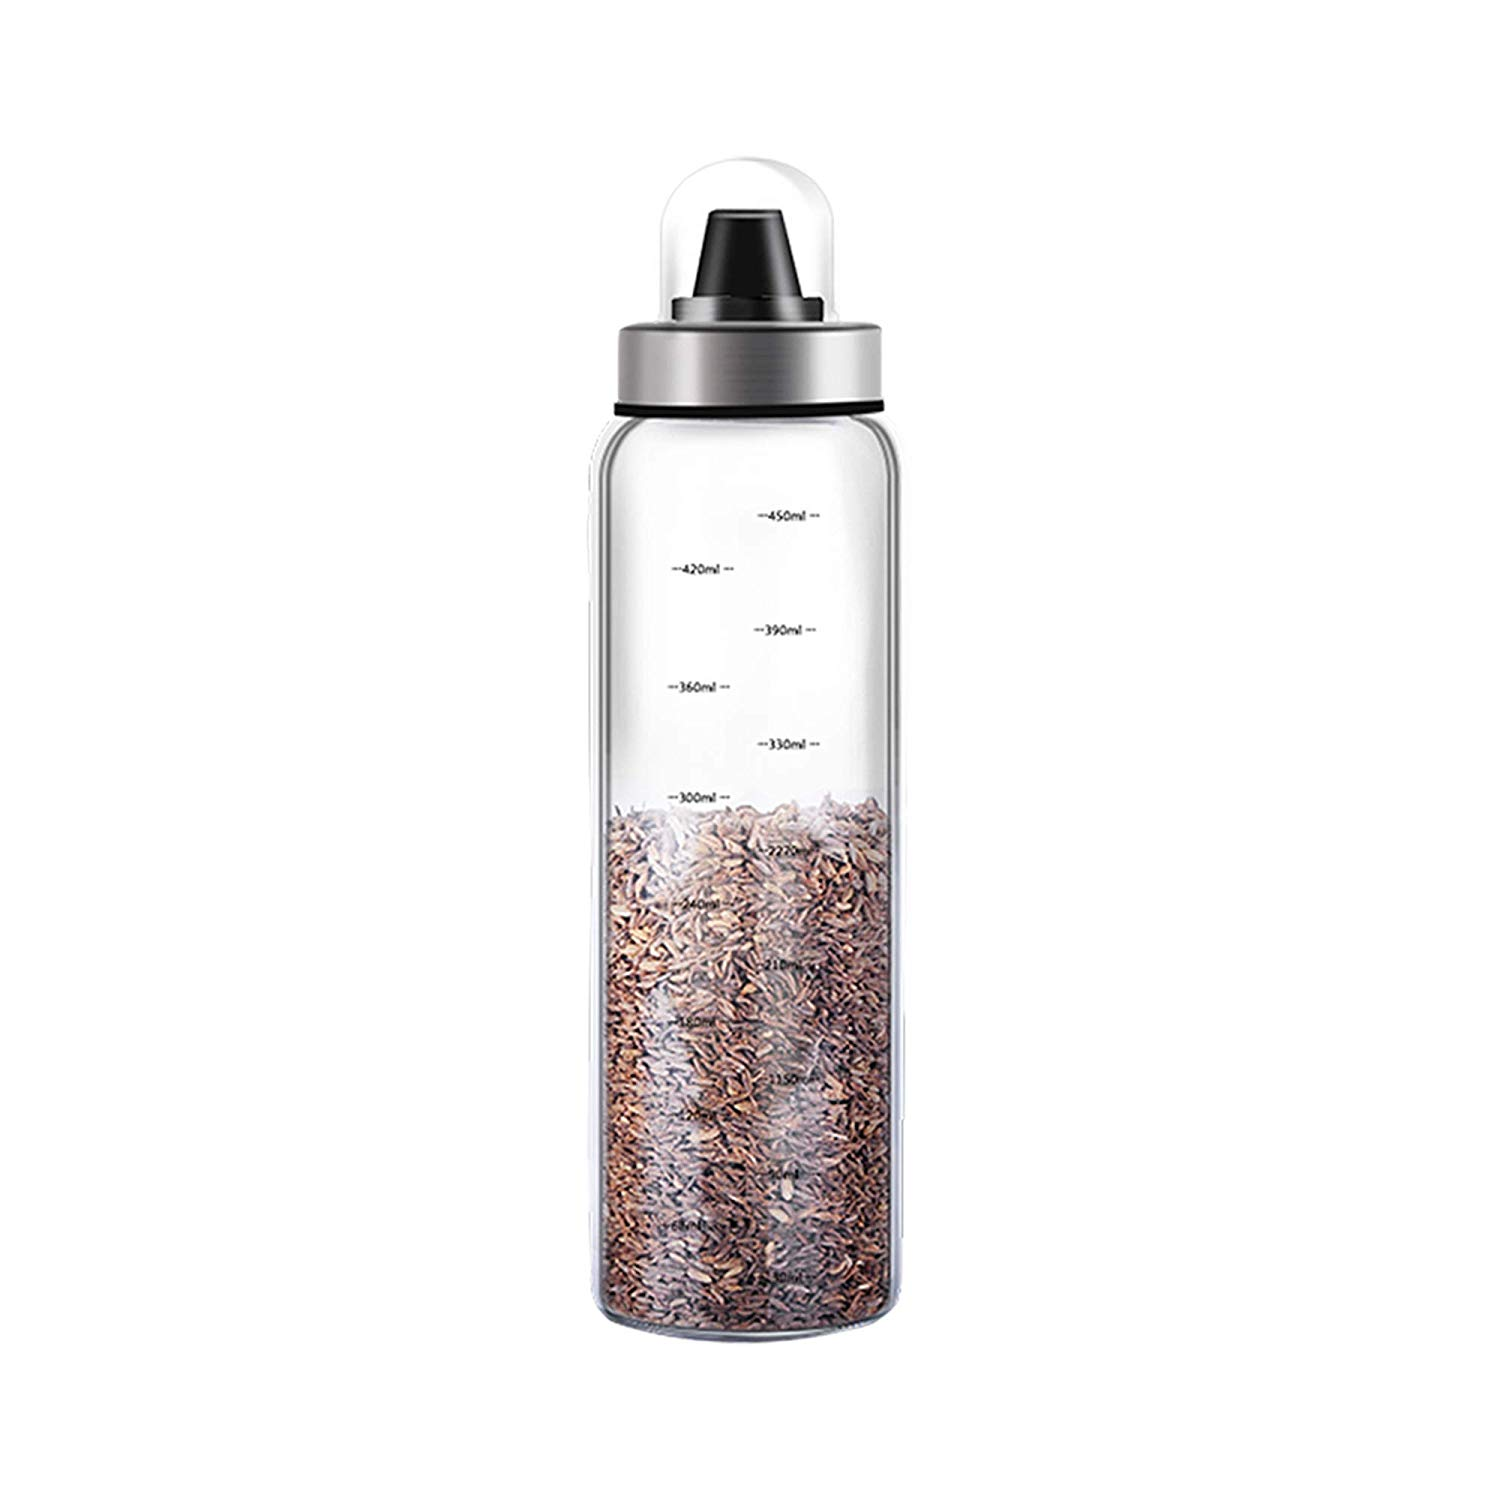 Femora Borosilicate Glass Metallic Lid Oil Bottle Jar Dispenser - 500ml, 1 Year Warranty- Set of 2